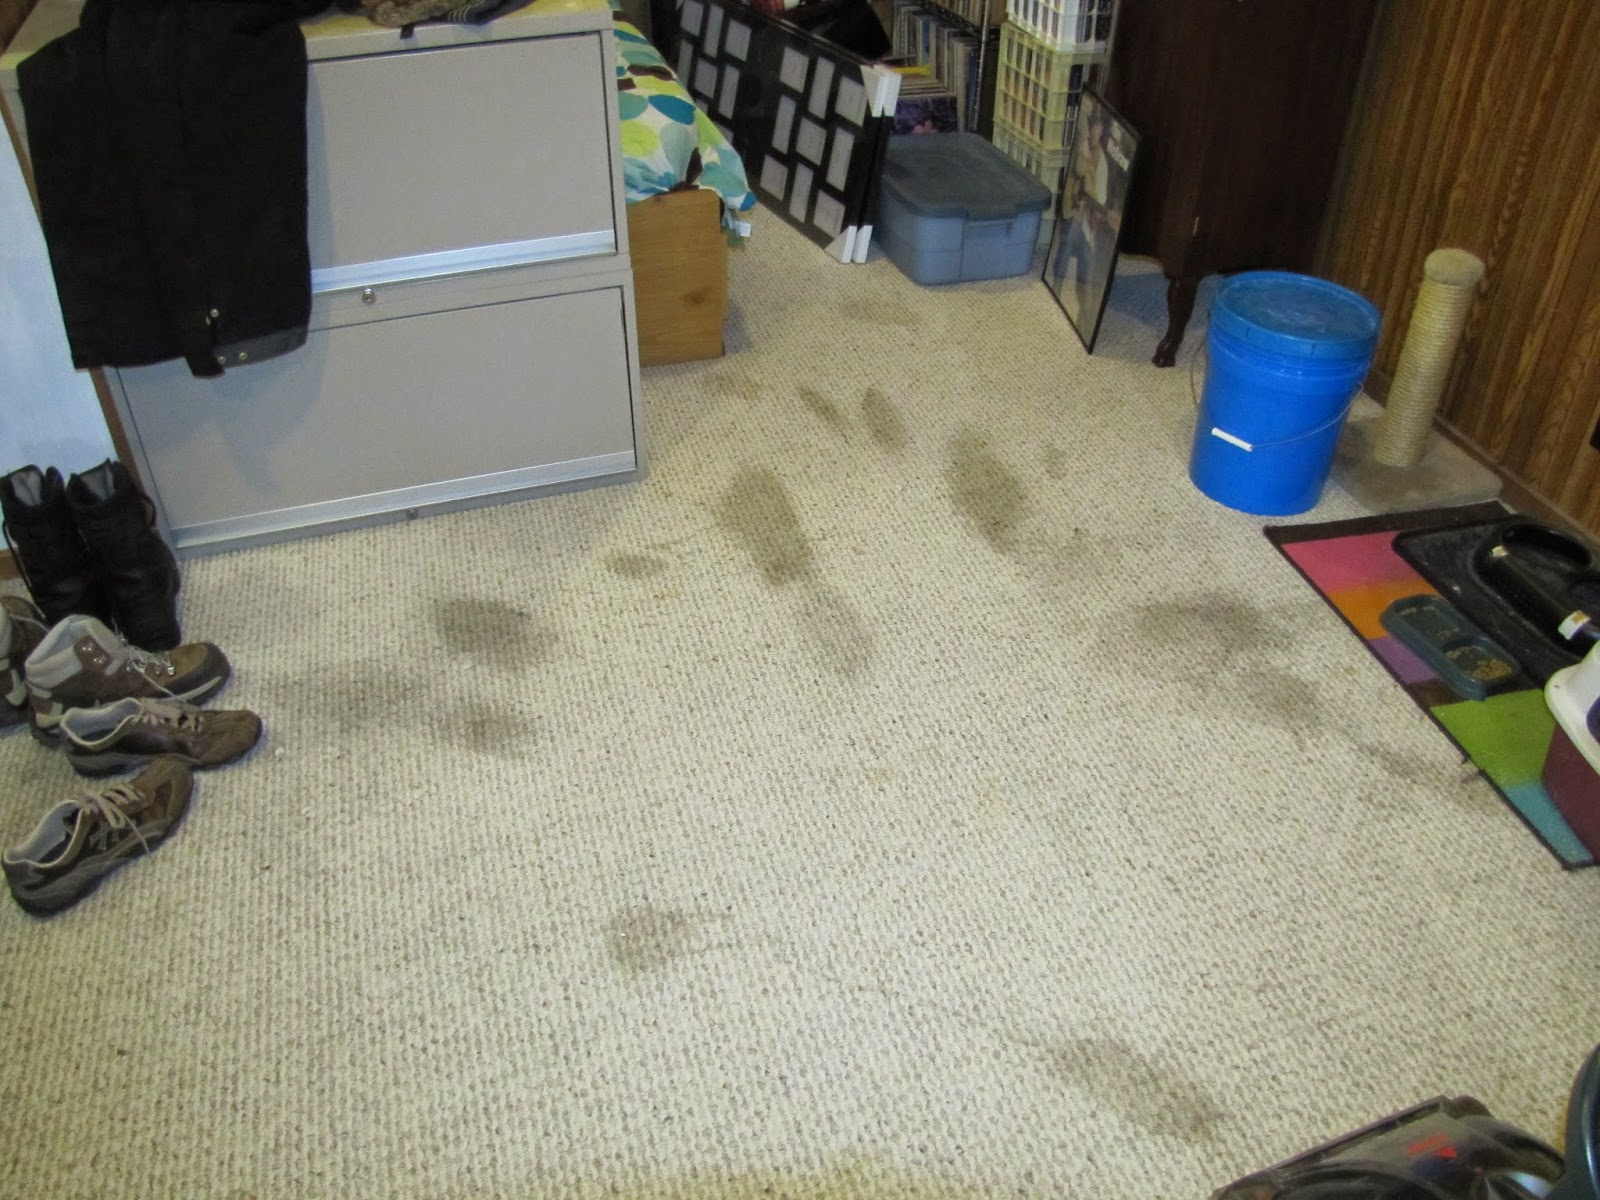 Best Pet Stain Remover, Carpet Cleaning Solution And Green ...